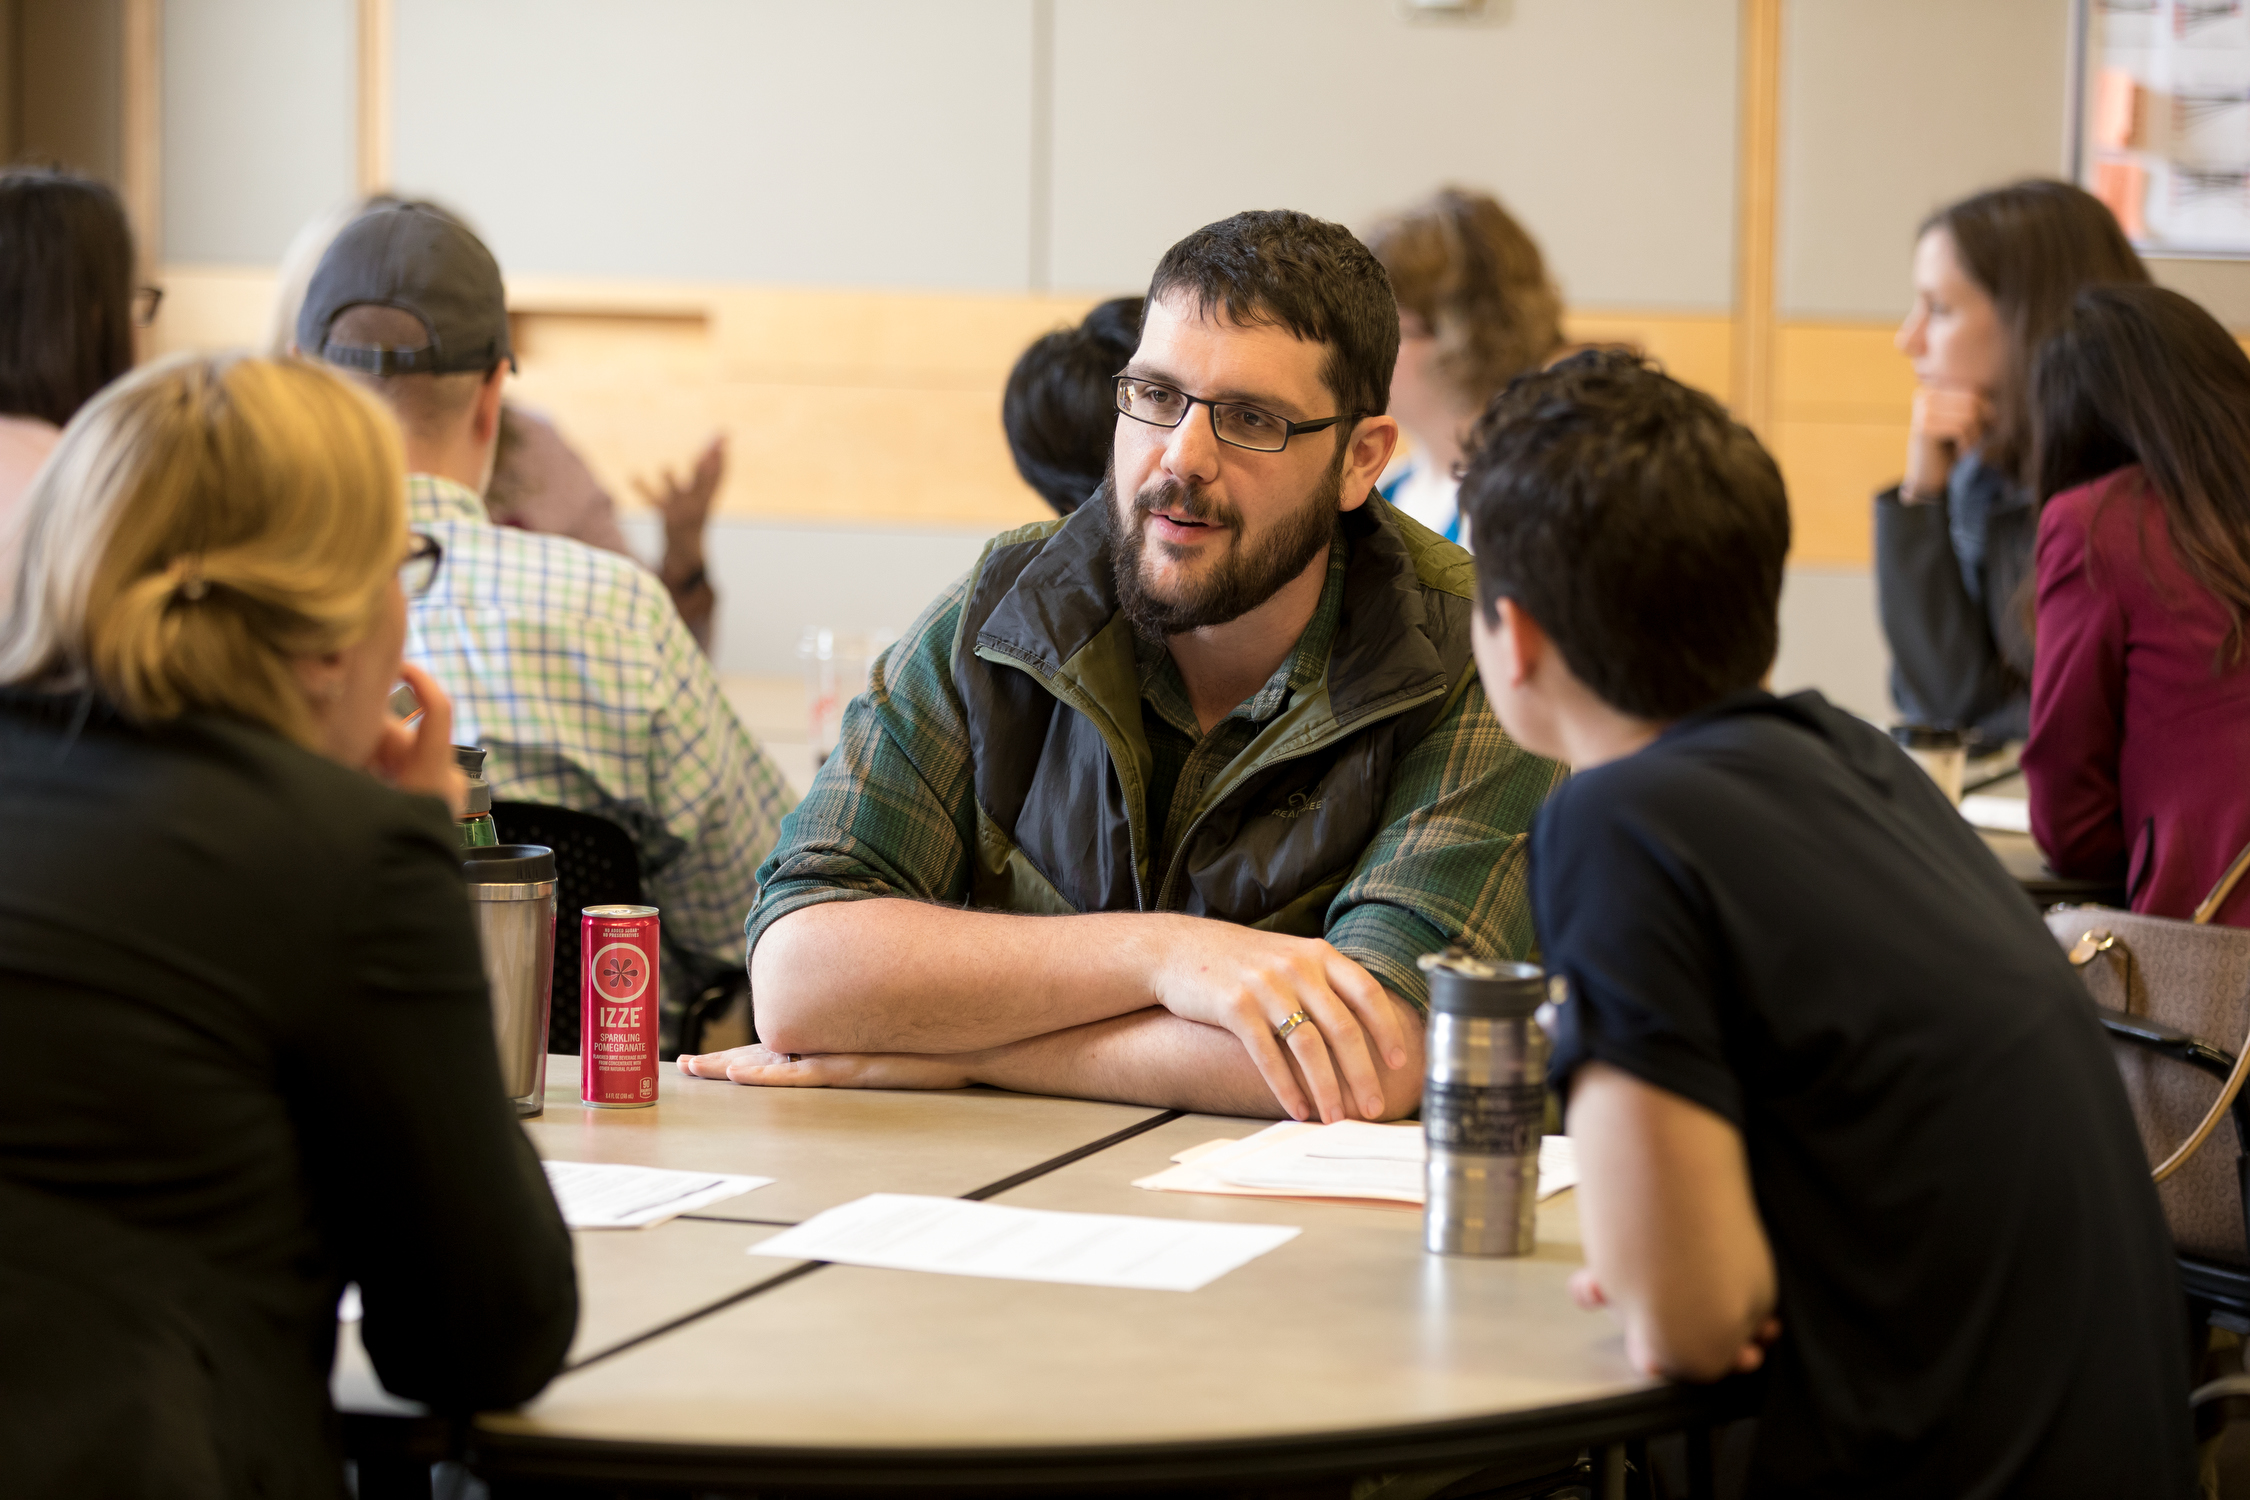 Graduate Student Eugene Law leads a small group discussion about mentoring strategies